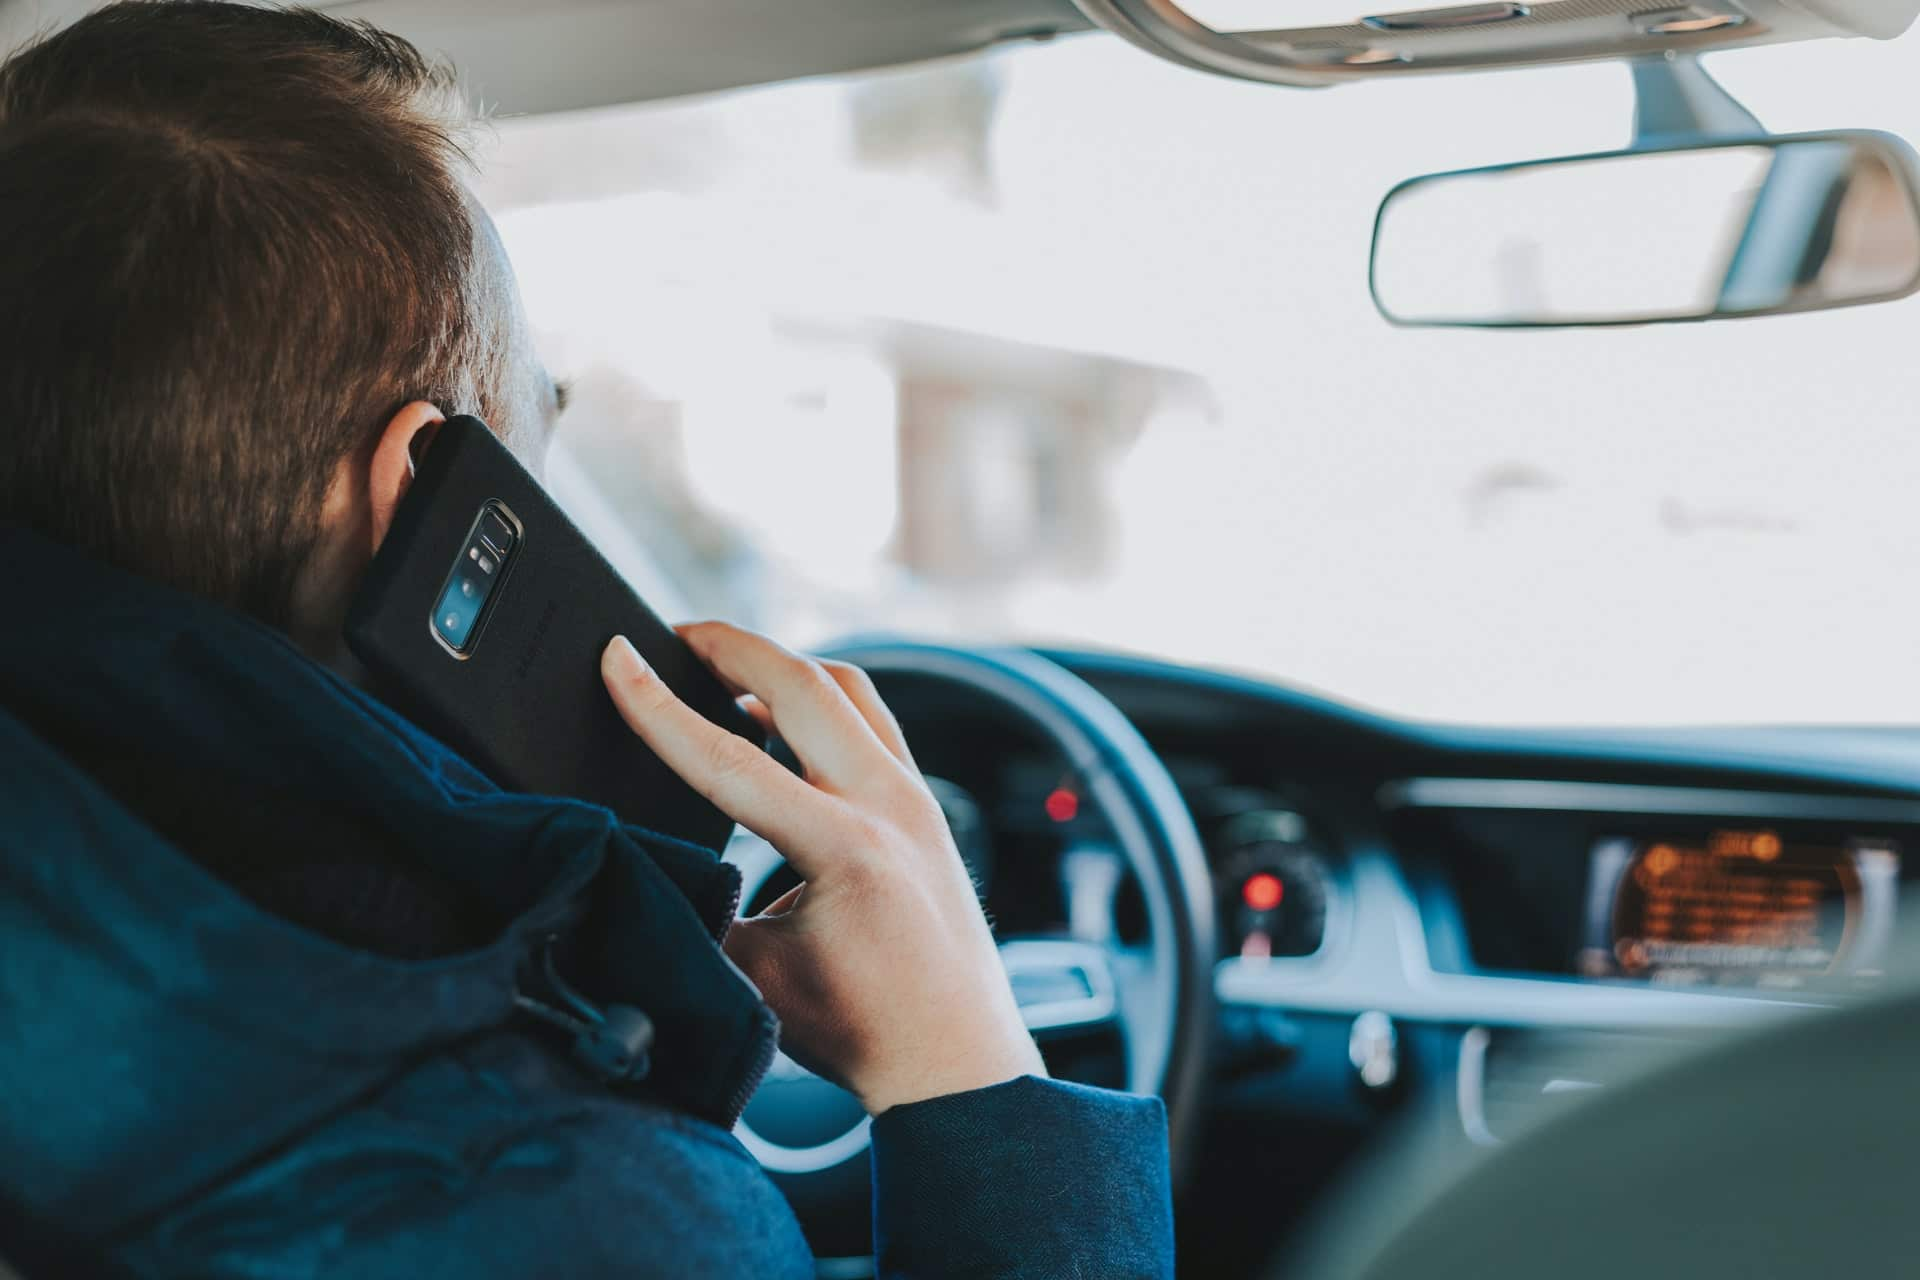 Breaking the law by using your phone while driving